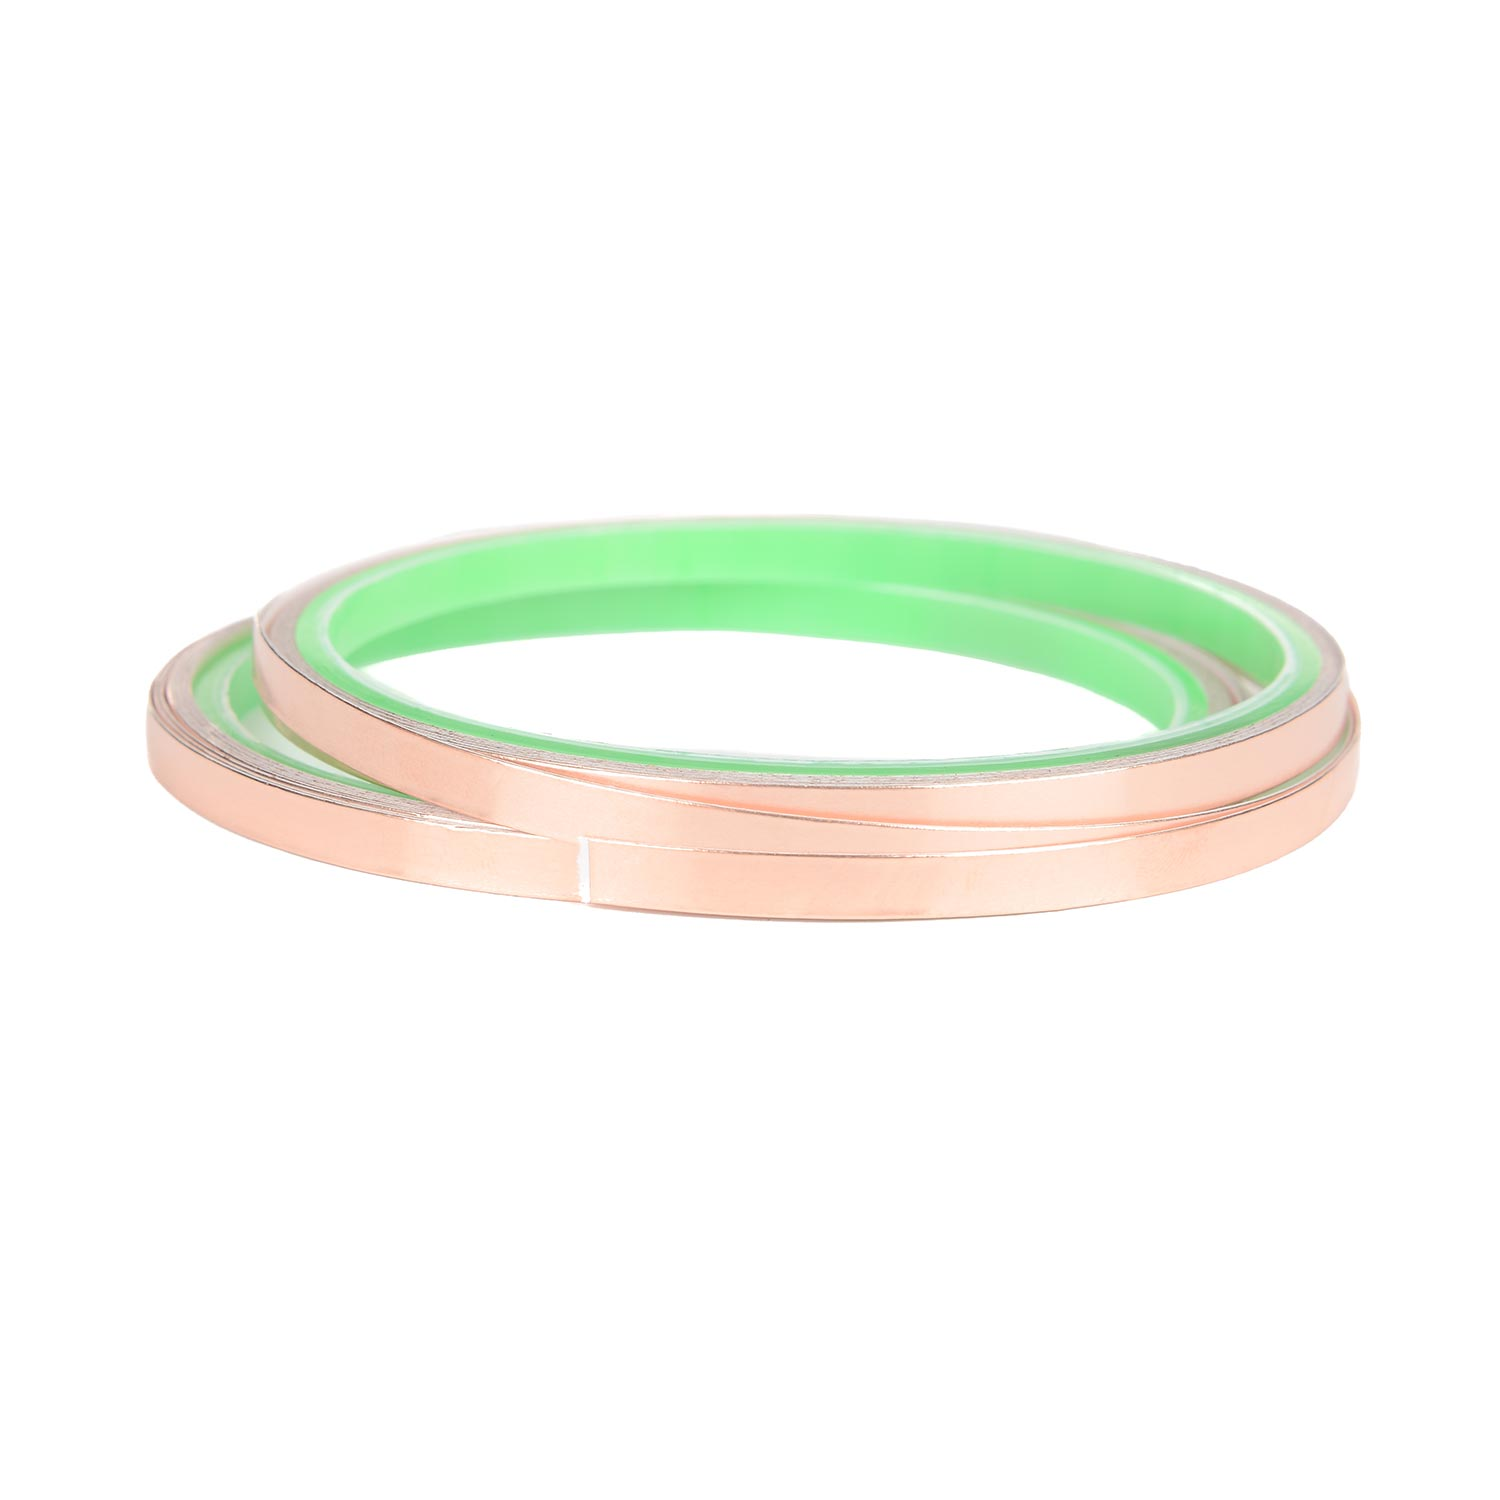 Copper Tape - 2 Pack (5mm wide)